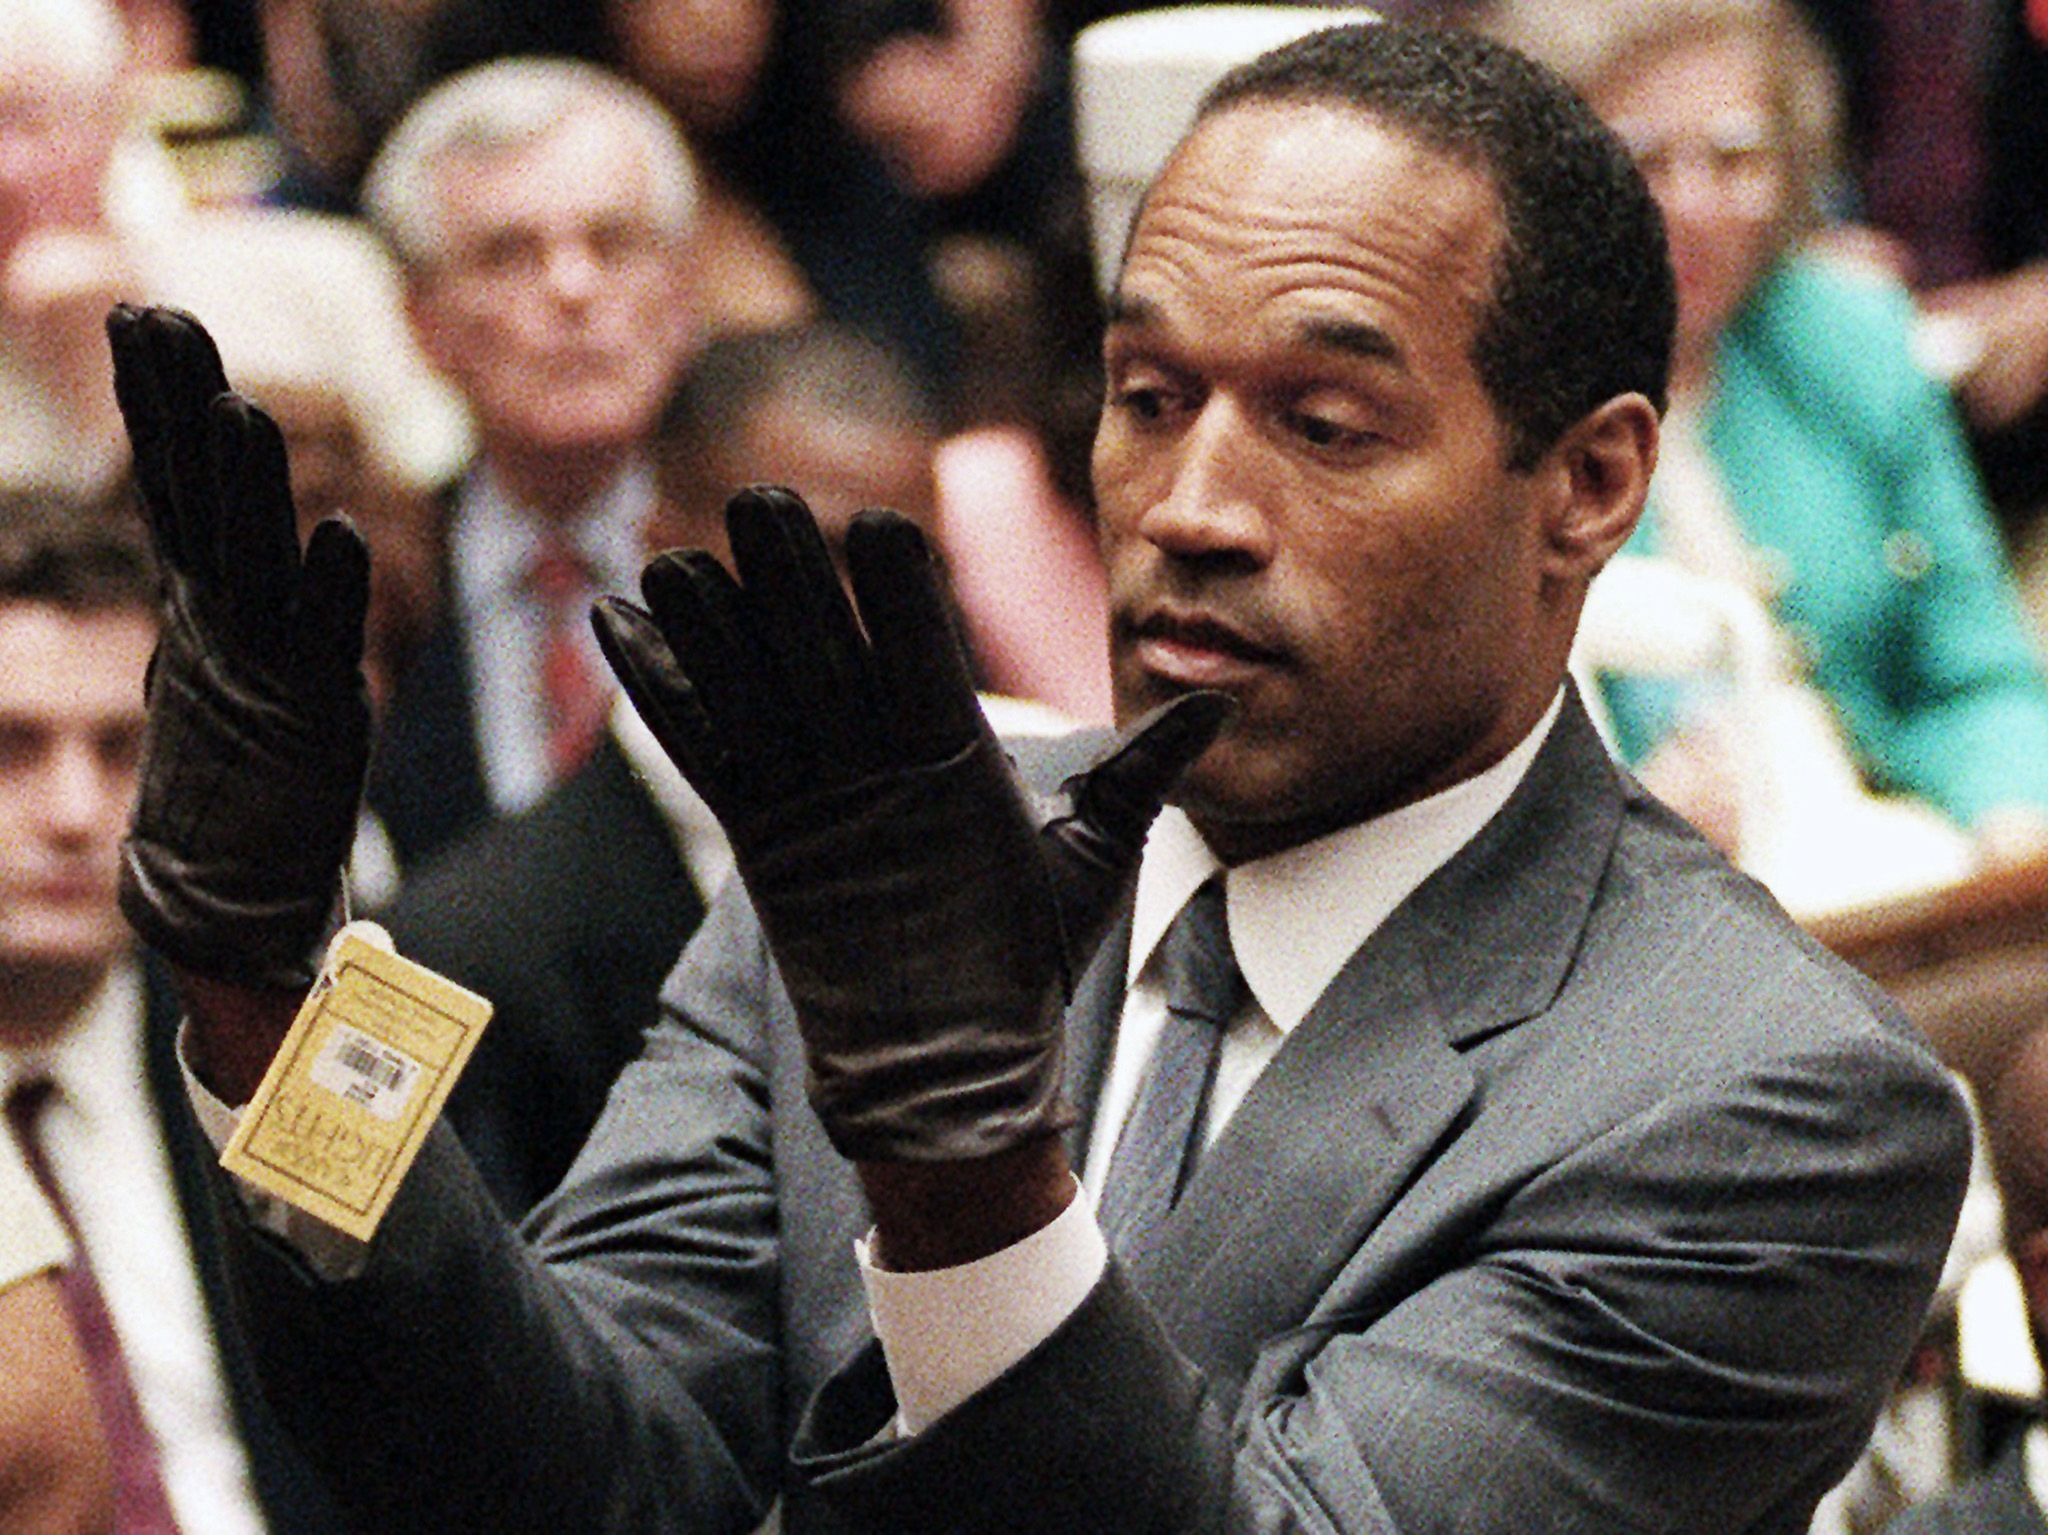 O.J. Simpson holds up his hands before the jury after putting on a new pair of gloves similar to... [Photo of the day - October 2018]